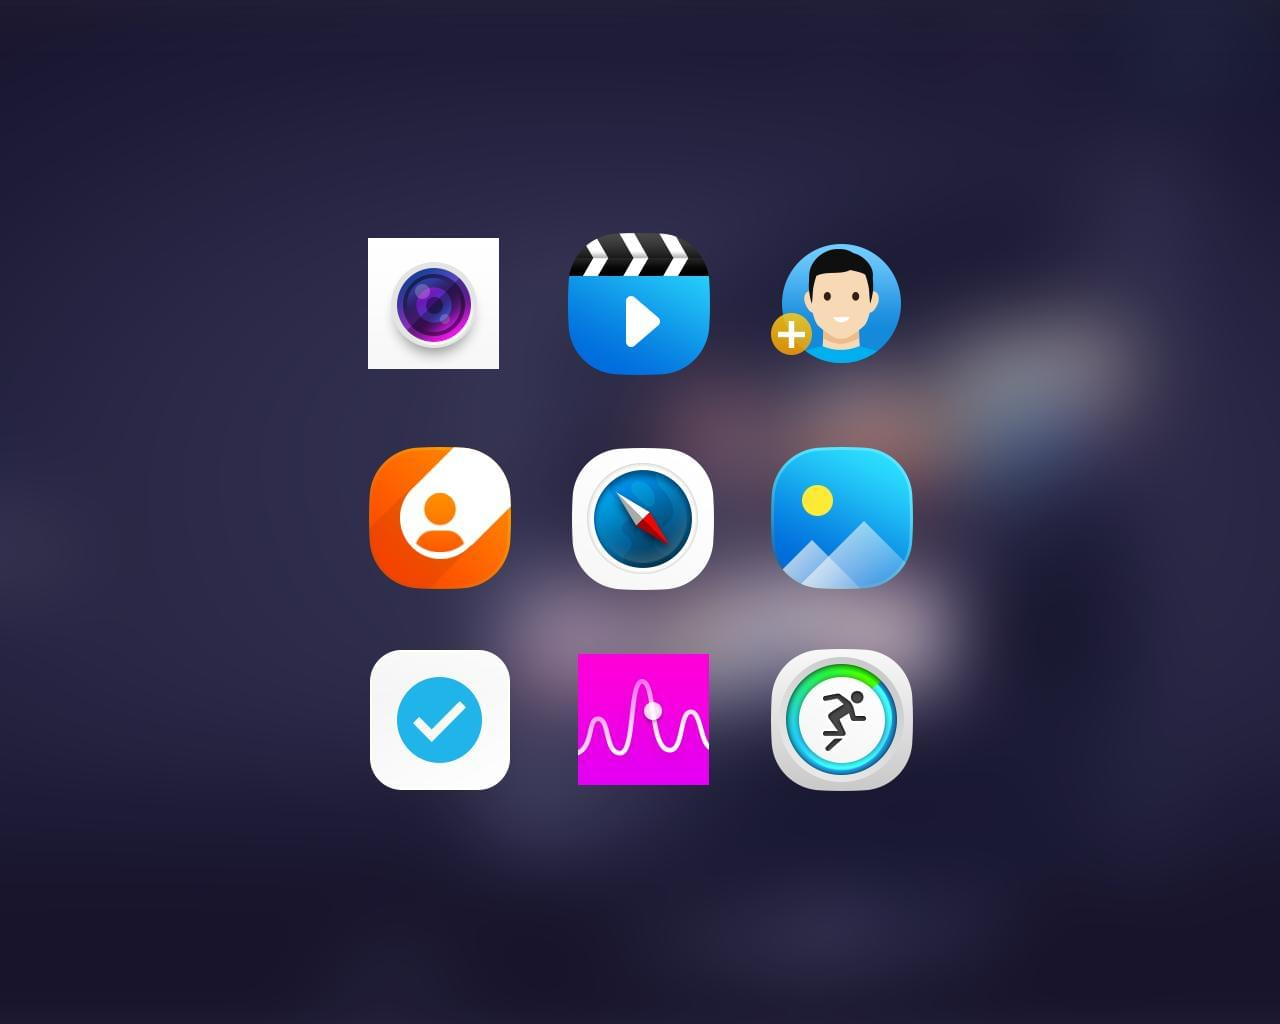 iOS & Android Icons Design  by ufsdesign - 112197